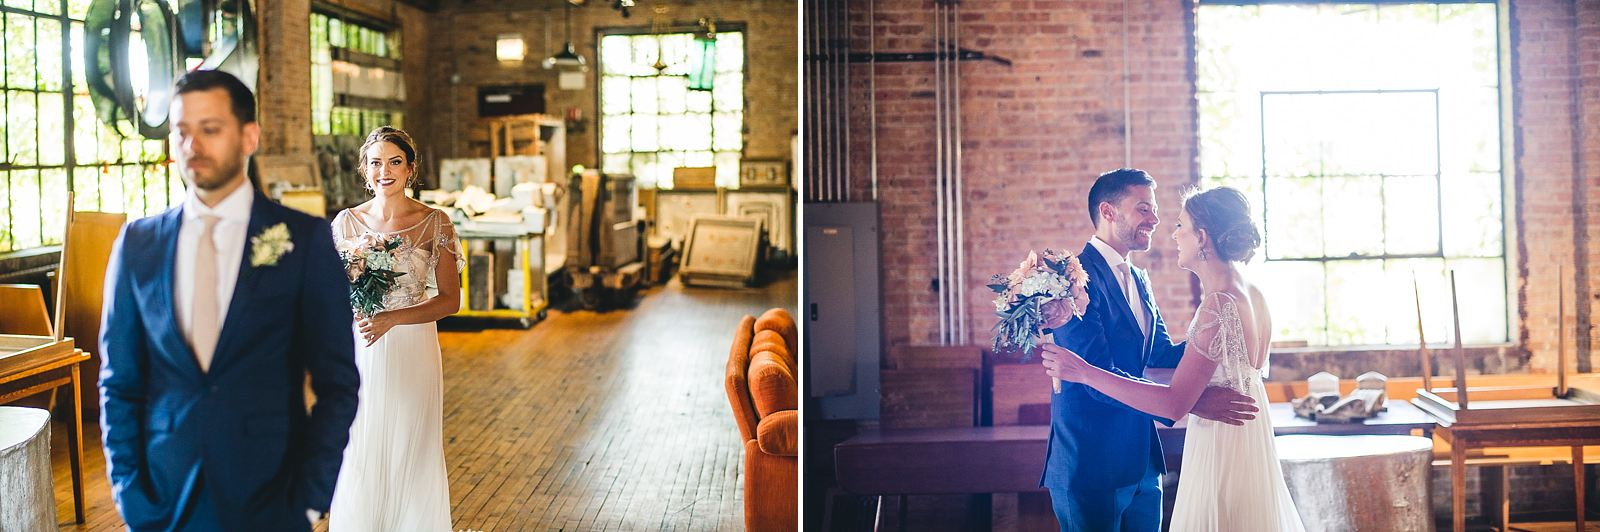 13 first look at salvage one inspo - Salvage One Wedding // Pearl + Ken